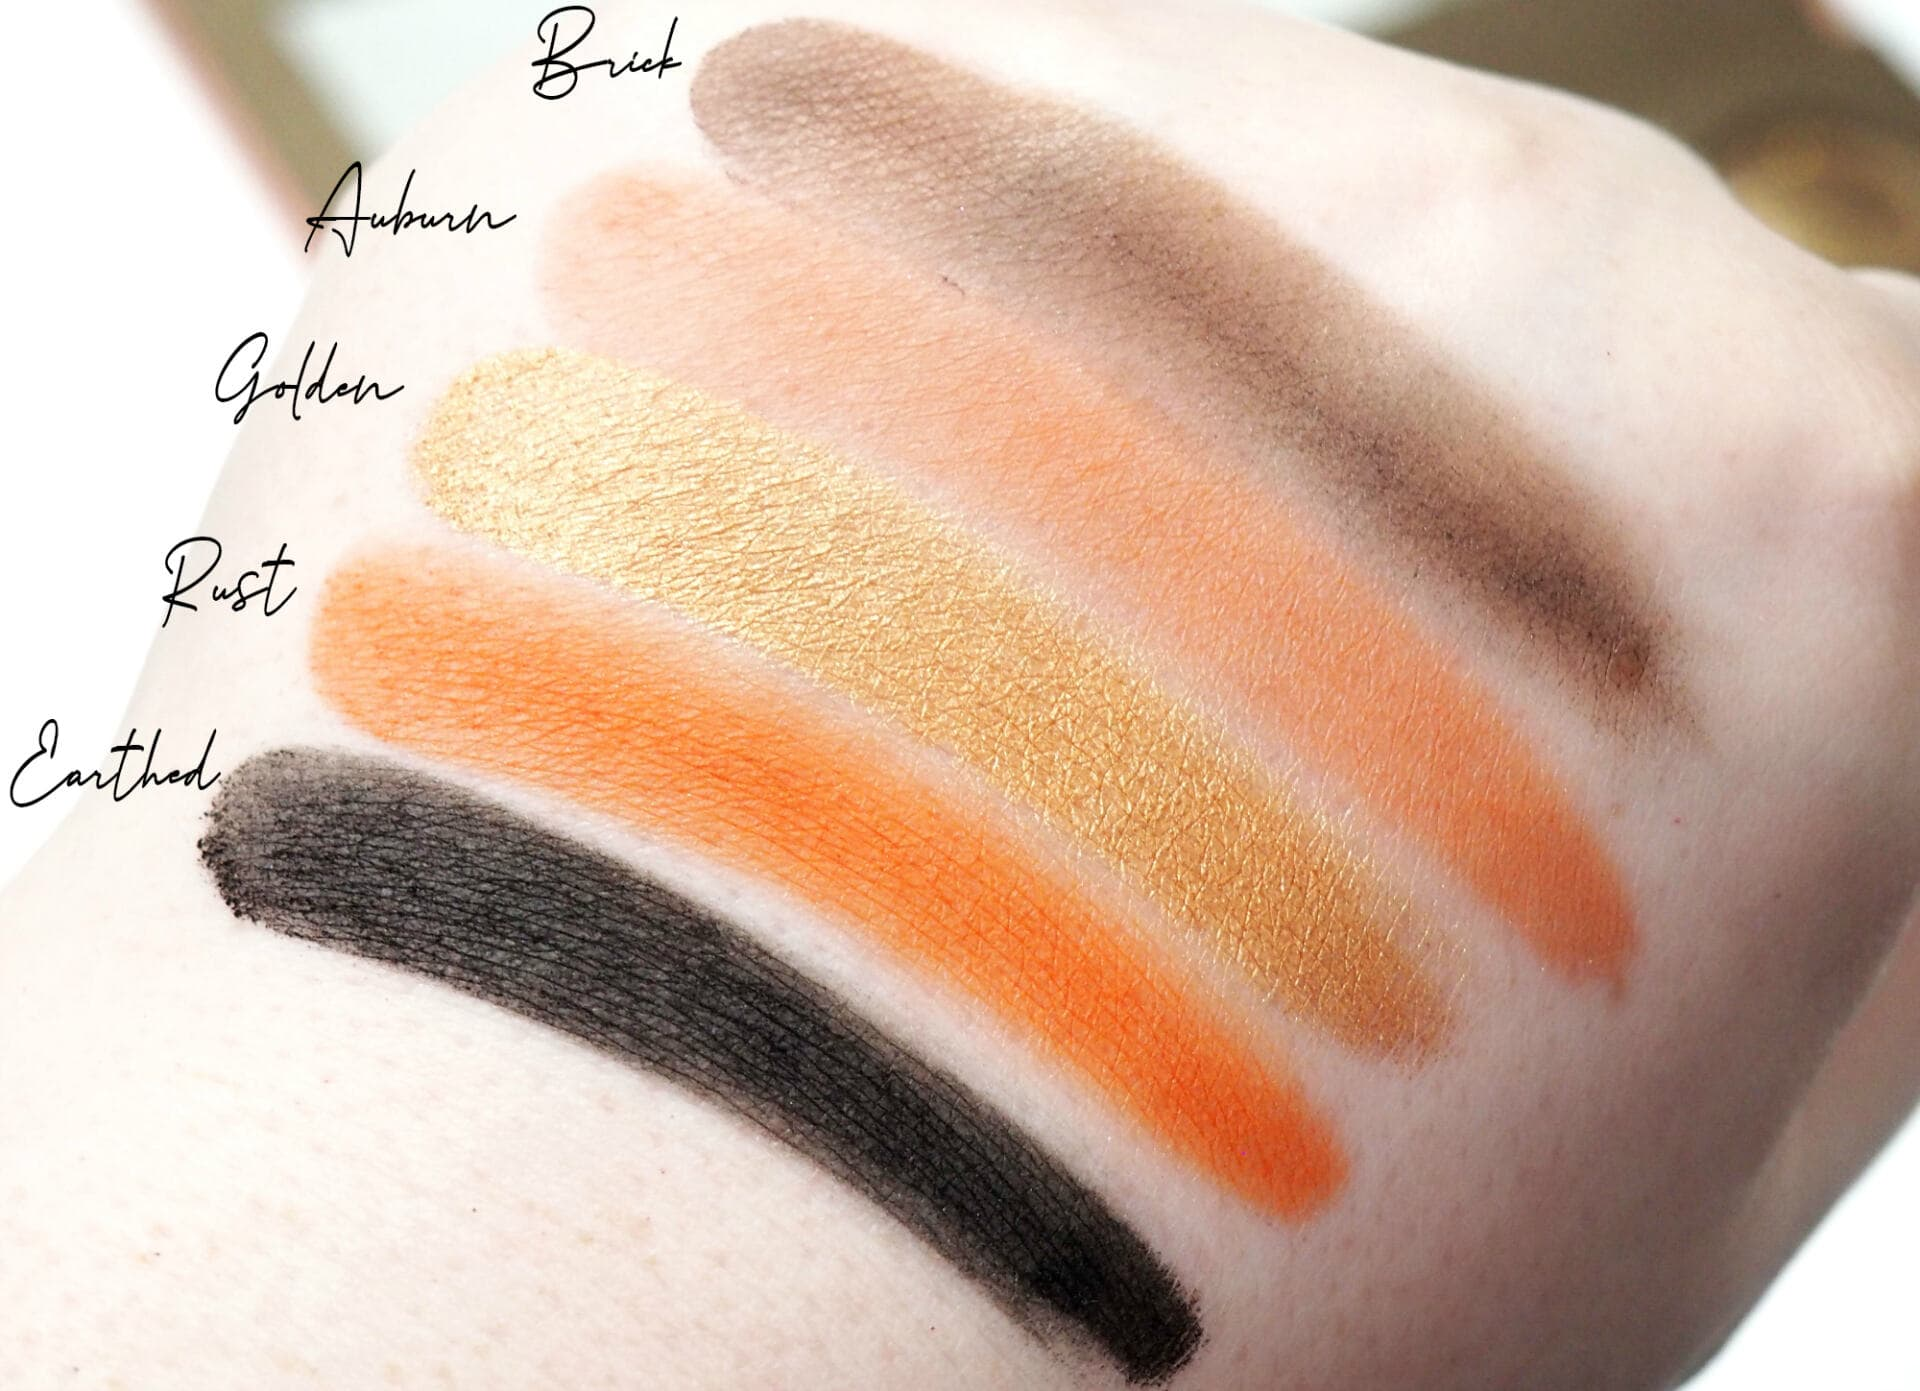 Revolution Pro Colour Focus Bronzed Glow Eyeshadow Palette Review and Swatches